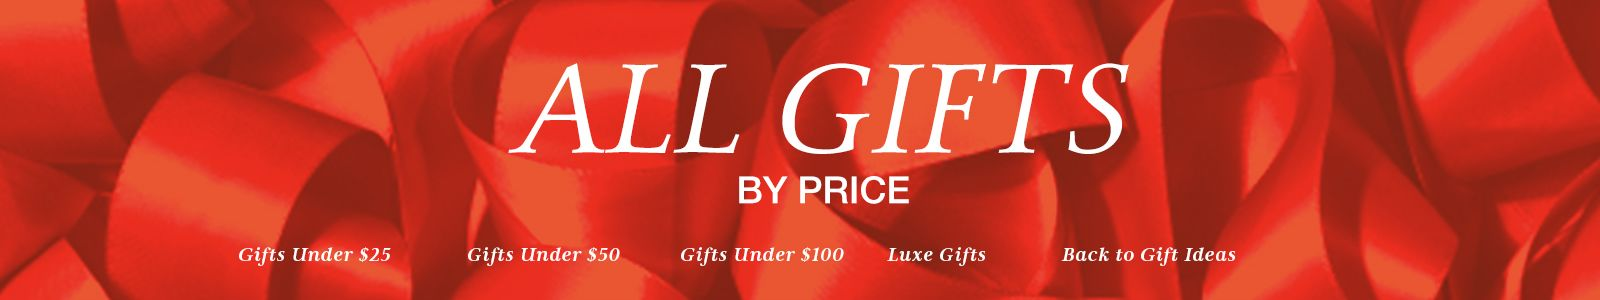 All Gifts by Price, Gifts Under $25, Gifts Under $50, Gifts Under $100, Luxe Gifts, Back to Gift Ideas